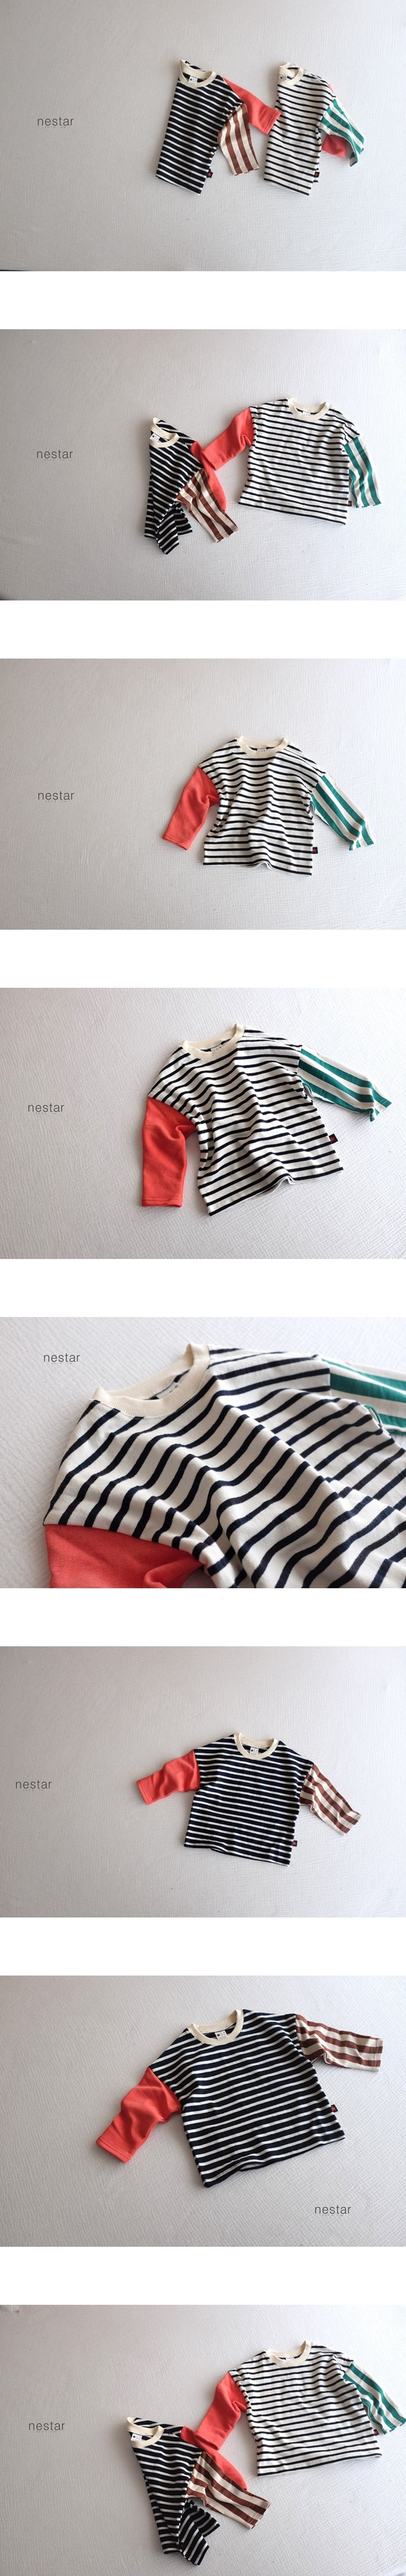 NESTAR - Korean Children Fashion - #Kfashion4kids - New BTS Tee